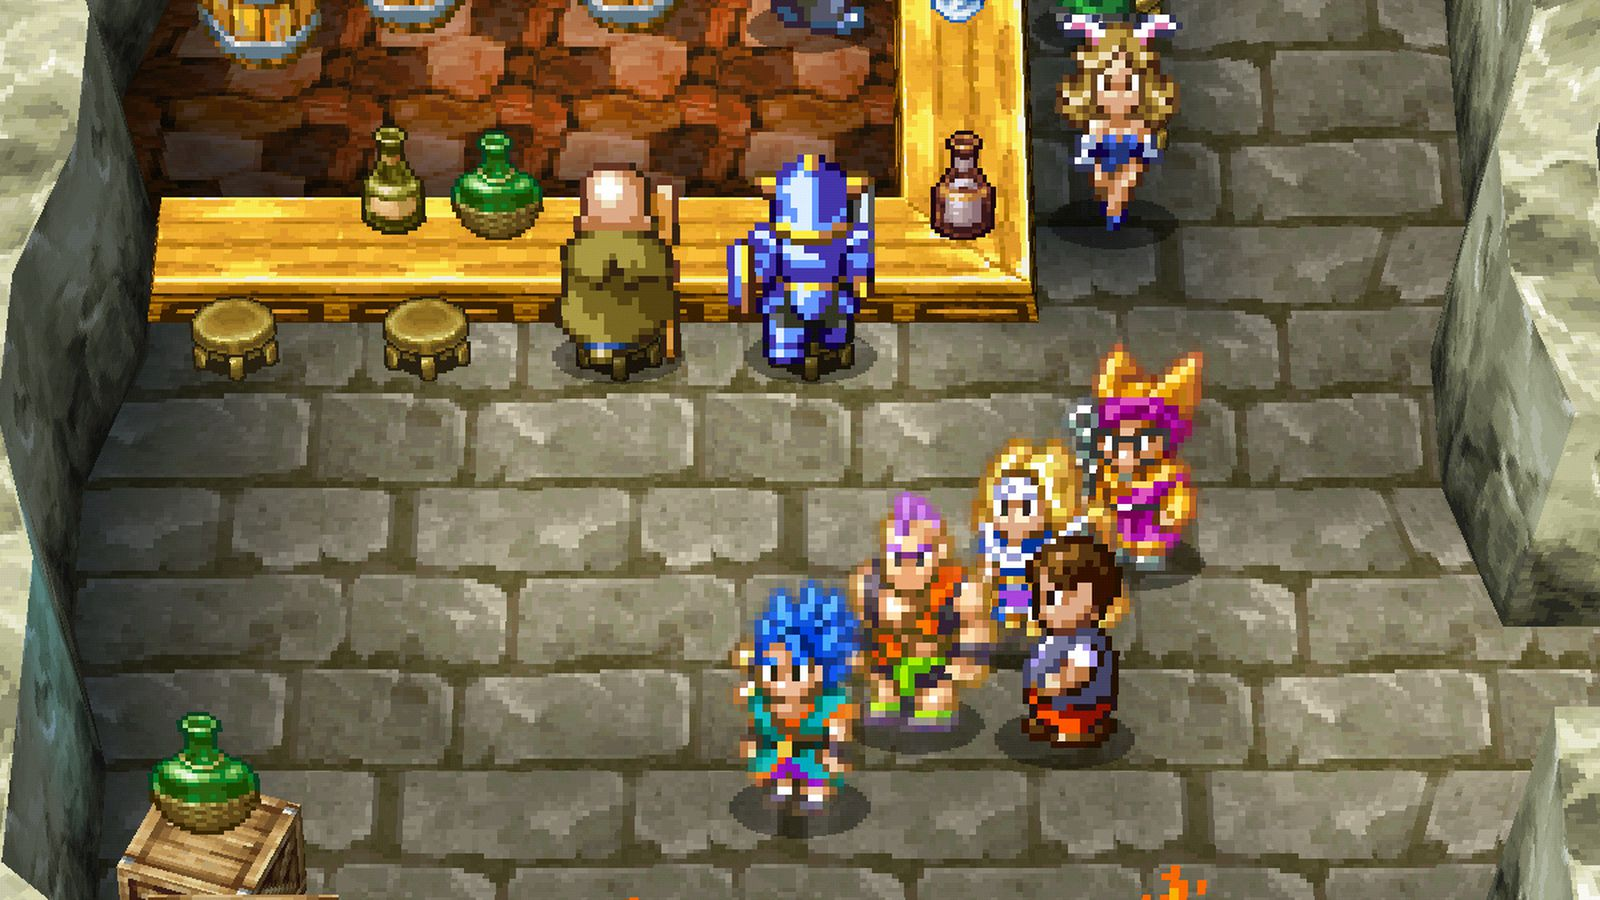 Dragon Quest Vi Fliegender Teppich Dragon Quest 6 Comes To Android And Ios Polygon